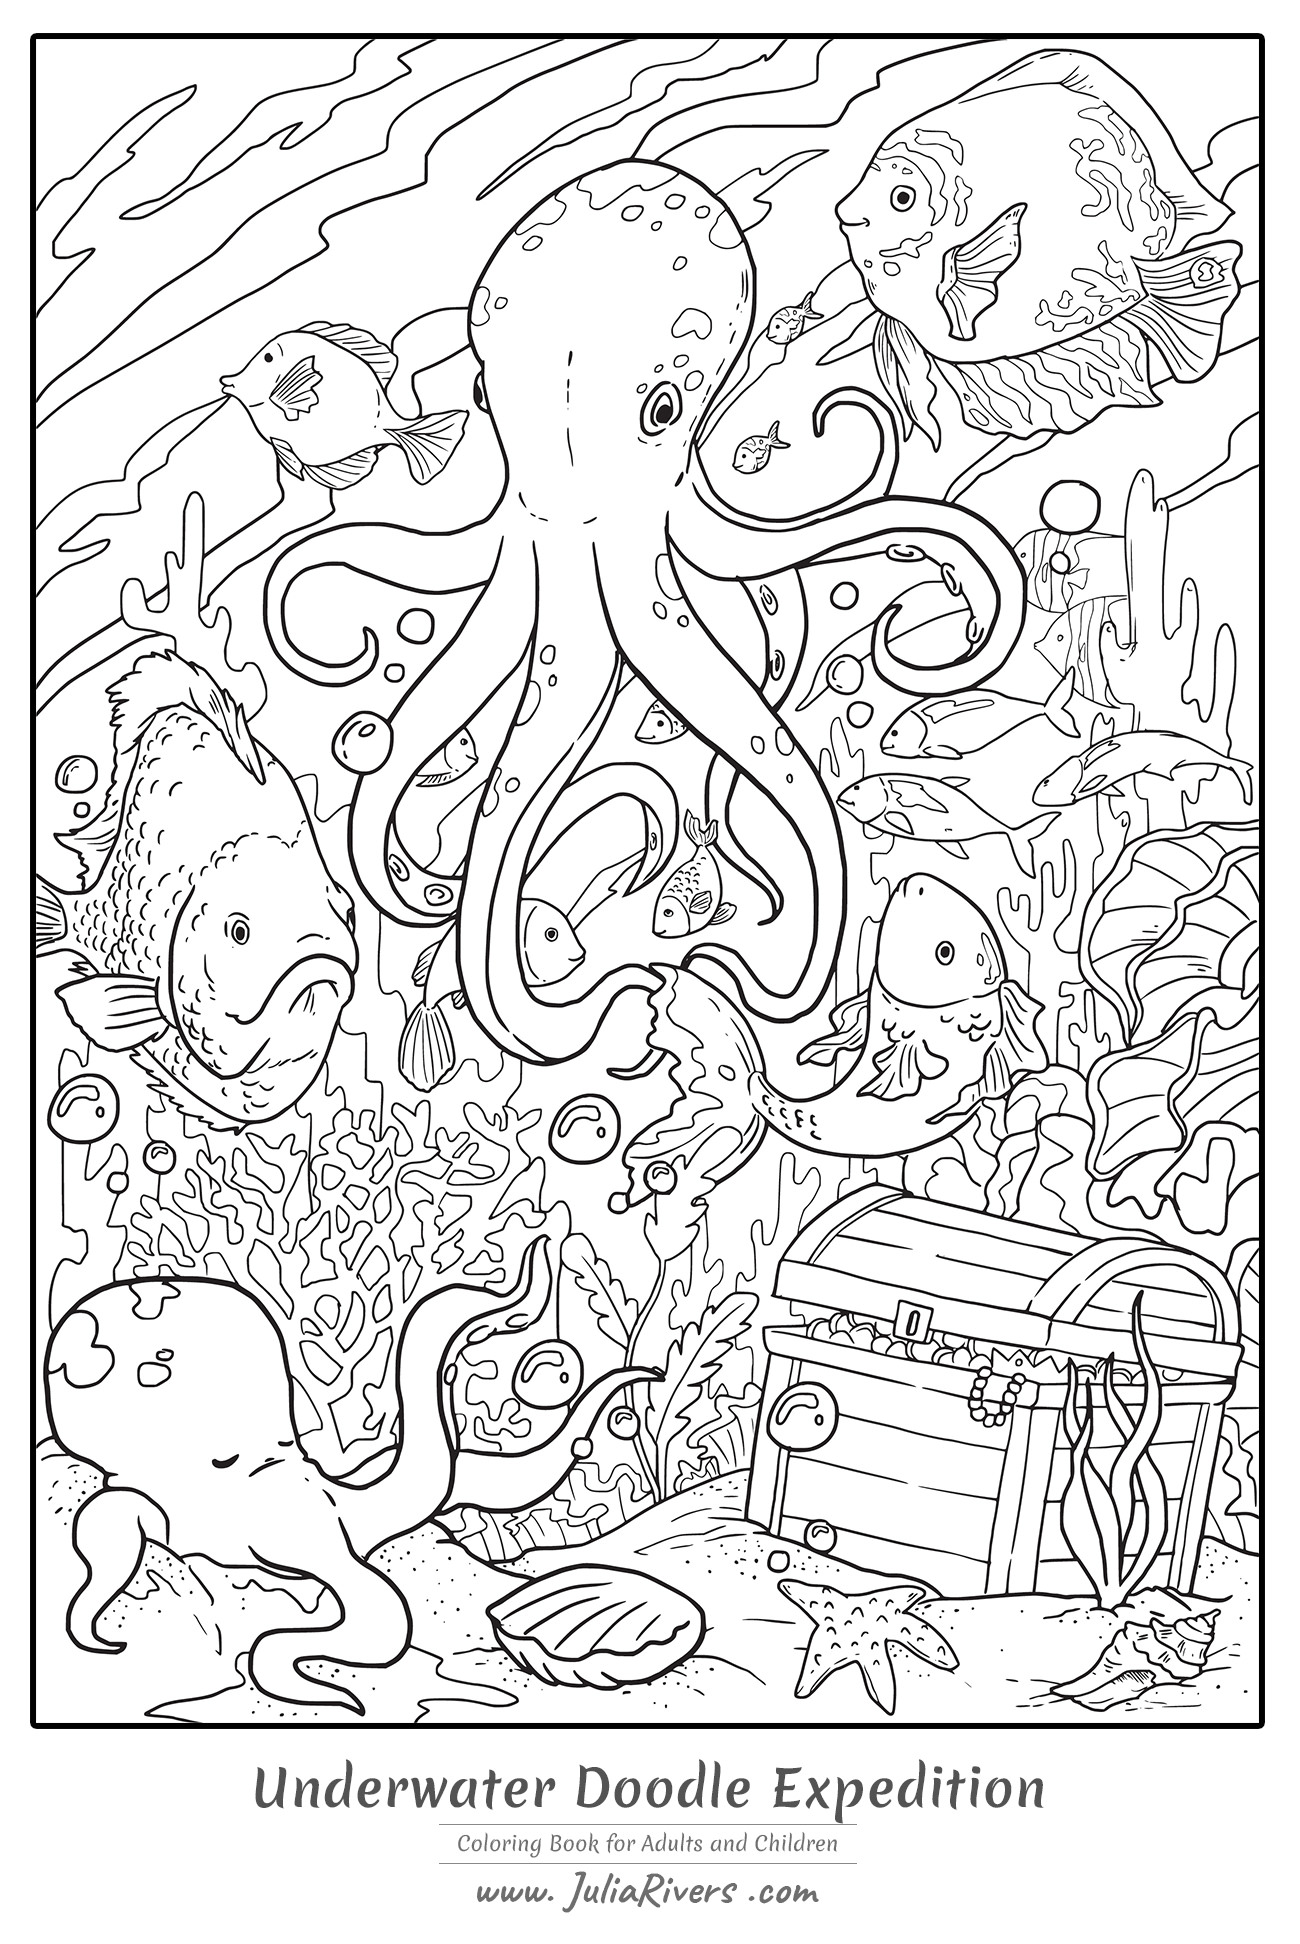 octopus coloring for adults adult underwater doodle expedition color pencil techniques coloring pages Octopus Adult Coloring Page